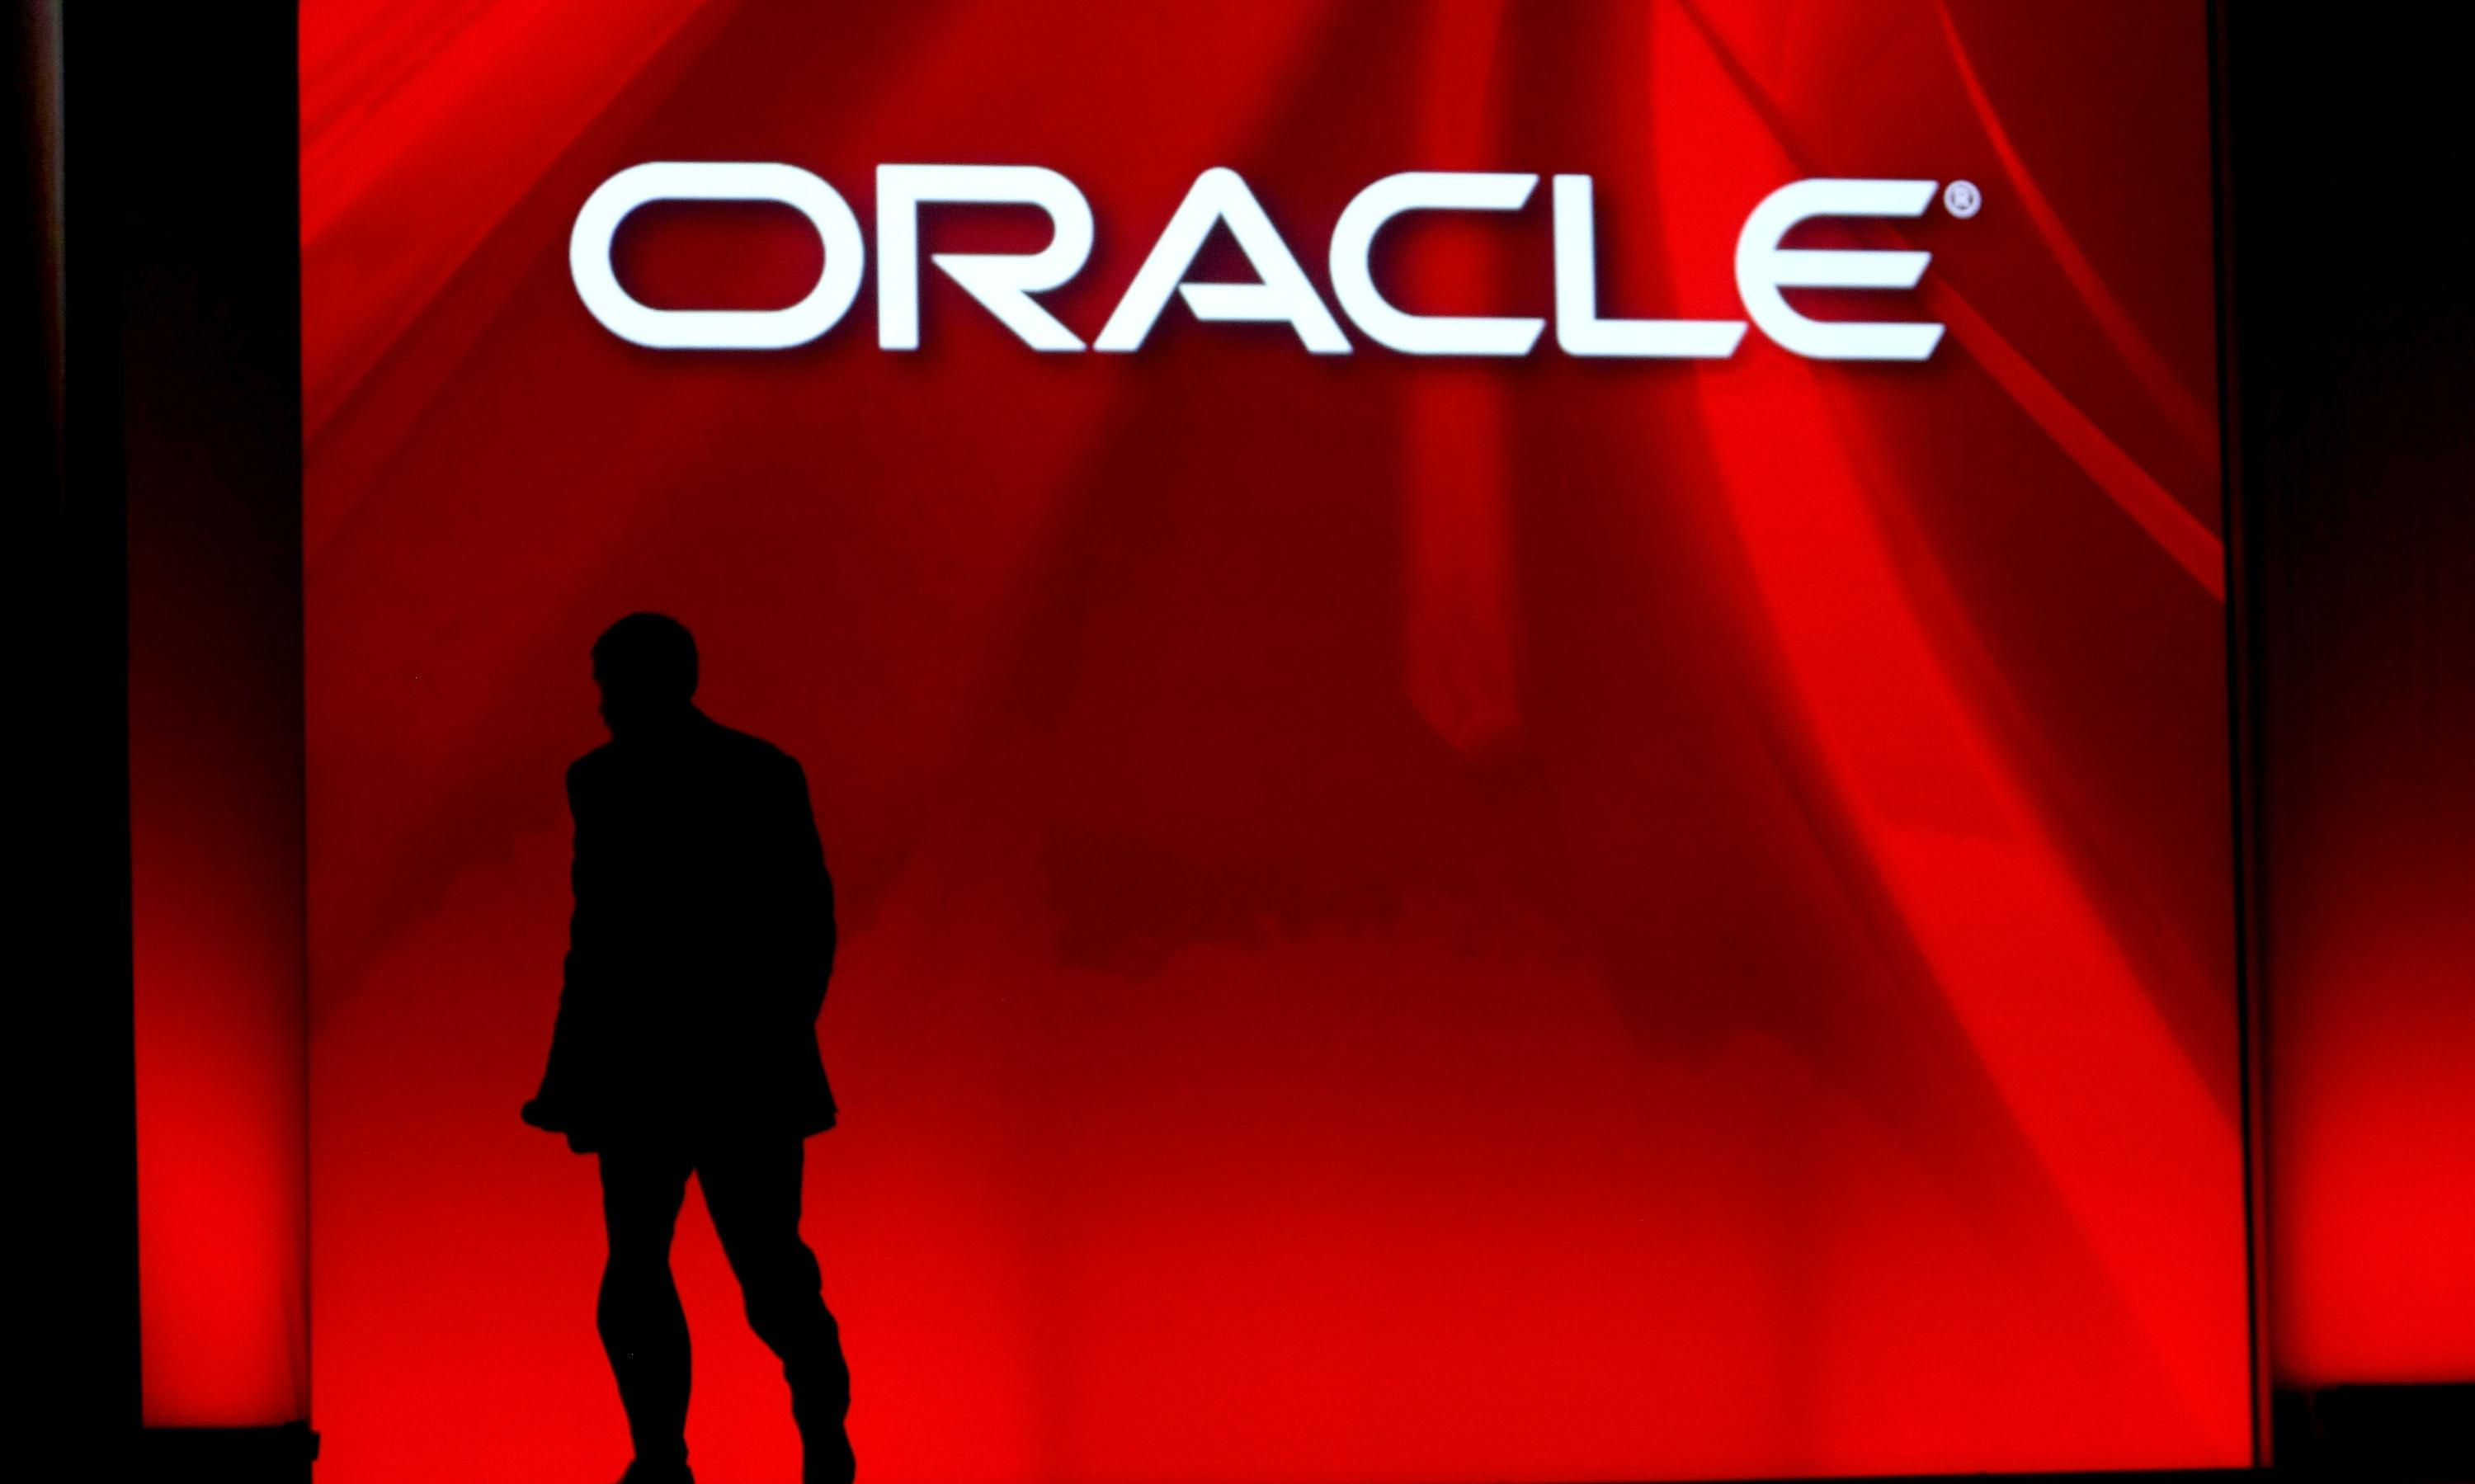 US government v Silicon Valley: Oracle said to owe $400m to women and minorities